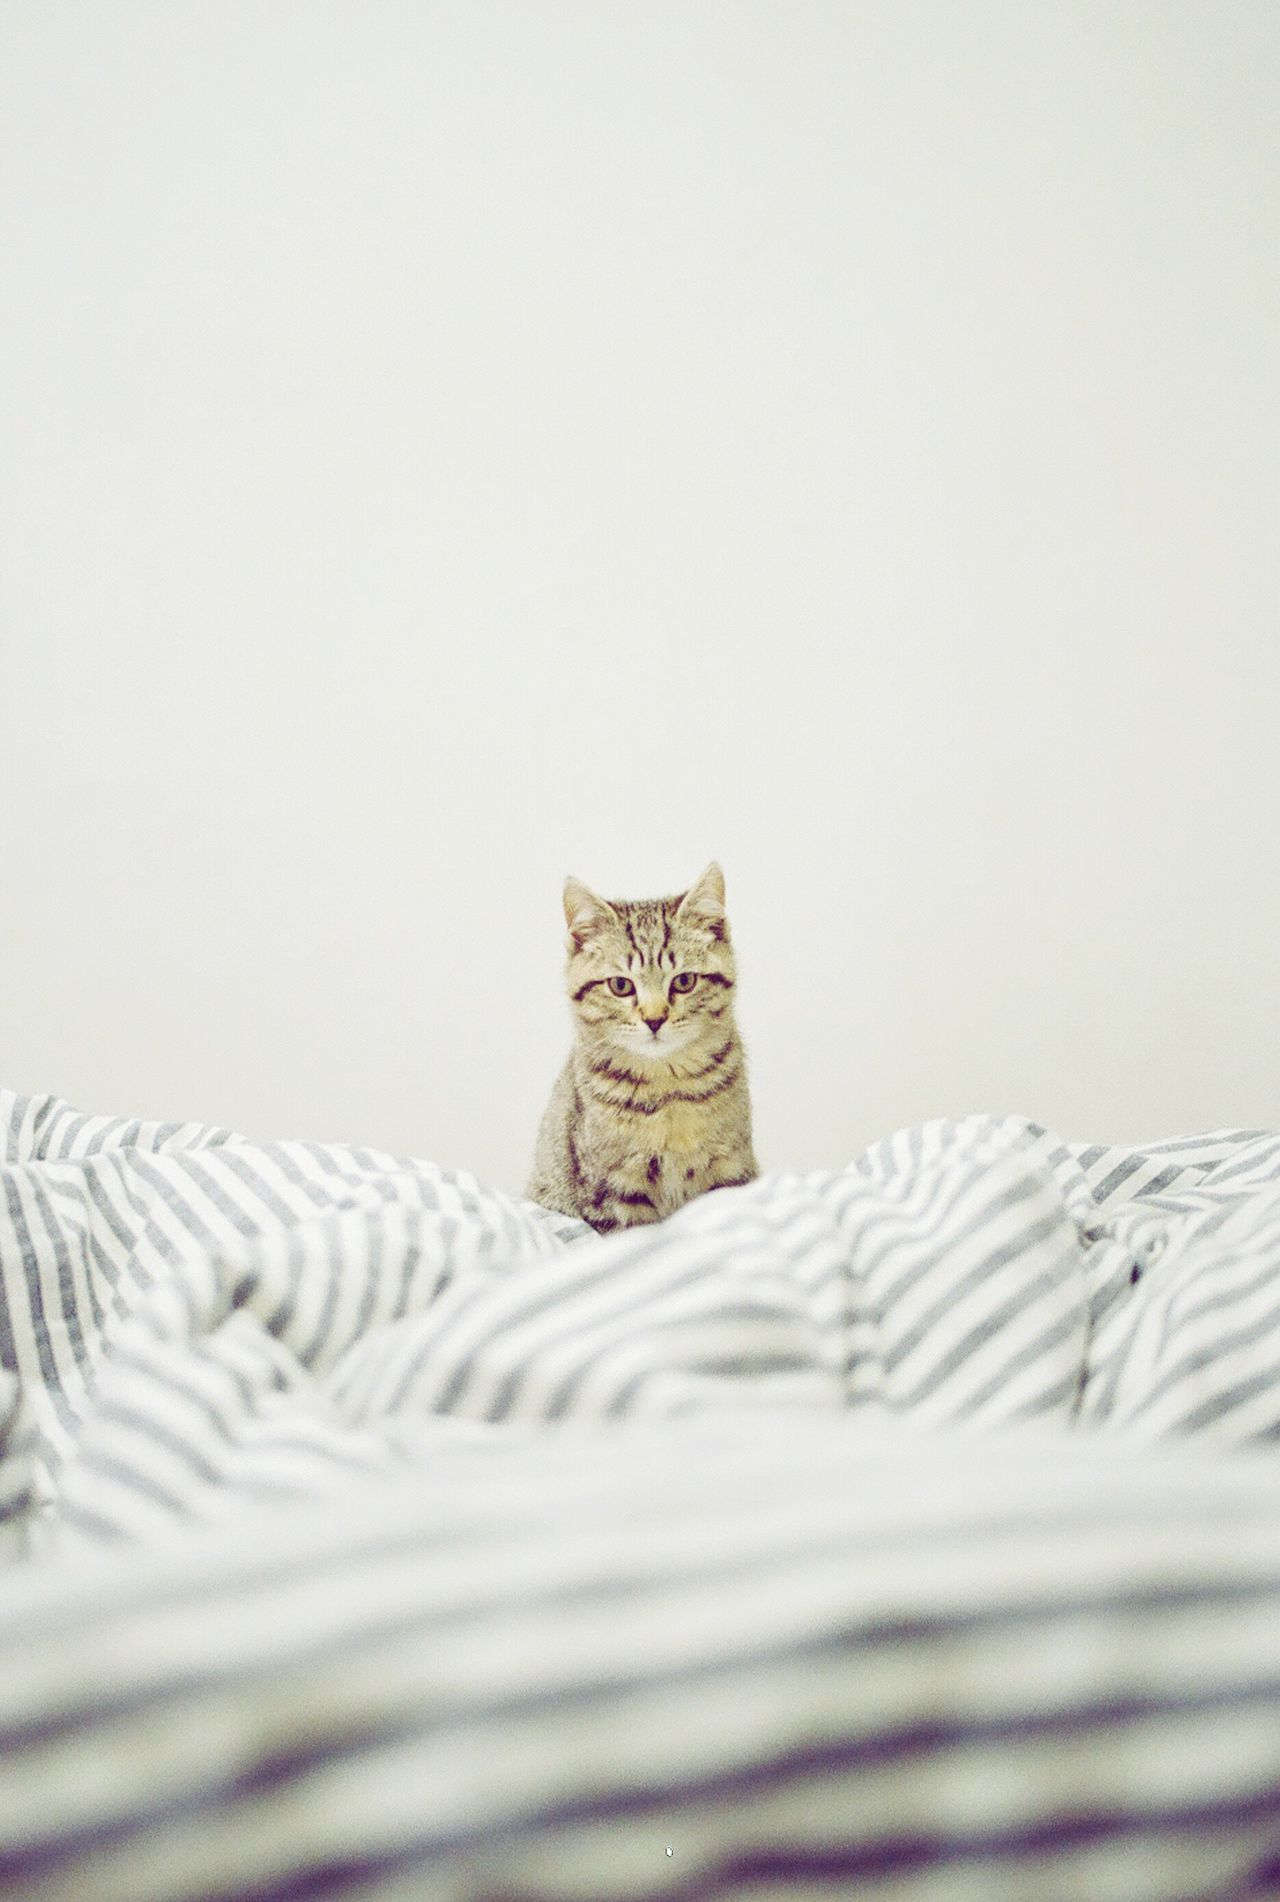 Film Photography Analogue Photography Portrait Cat Cute At Home Blanket Stripes Pattern Pets Bed No People Indoors  White Background Eye Contact Day Bedroom